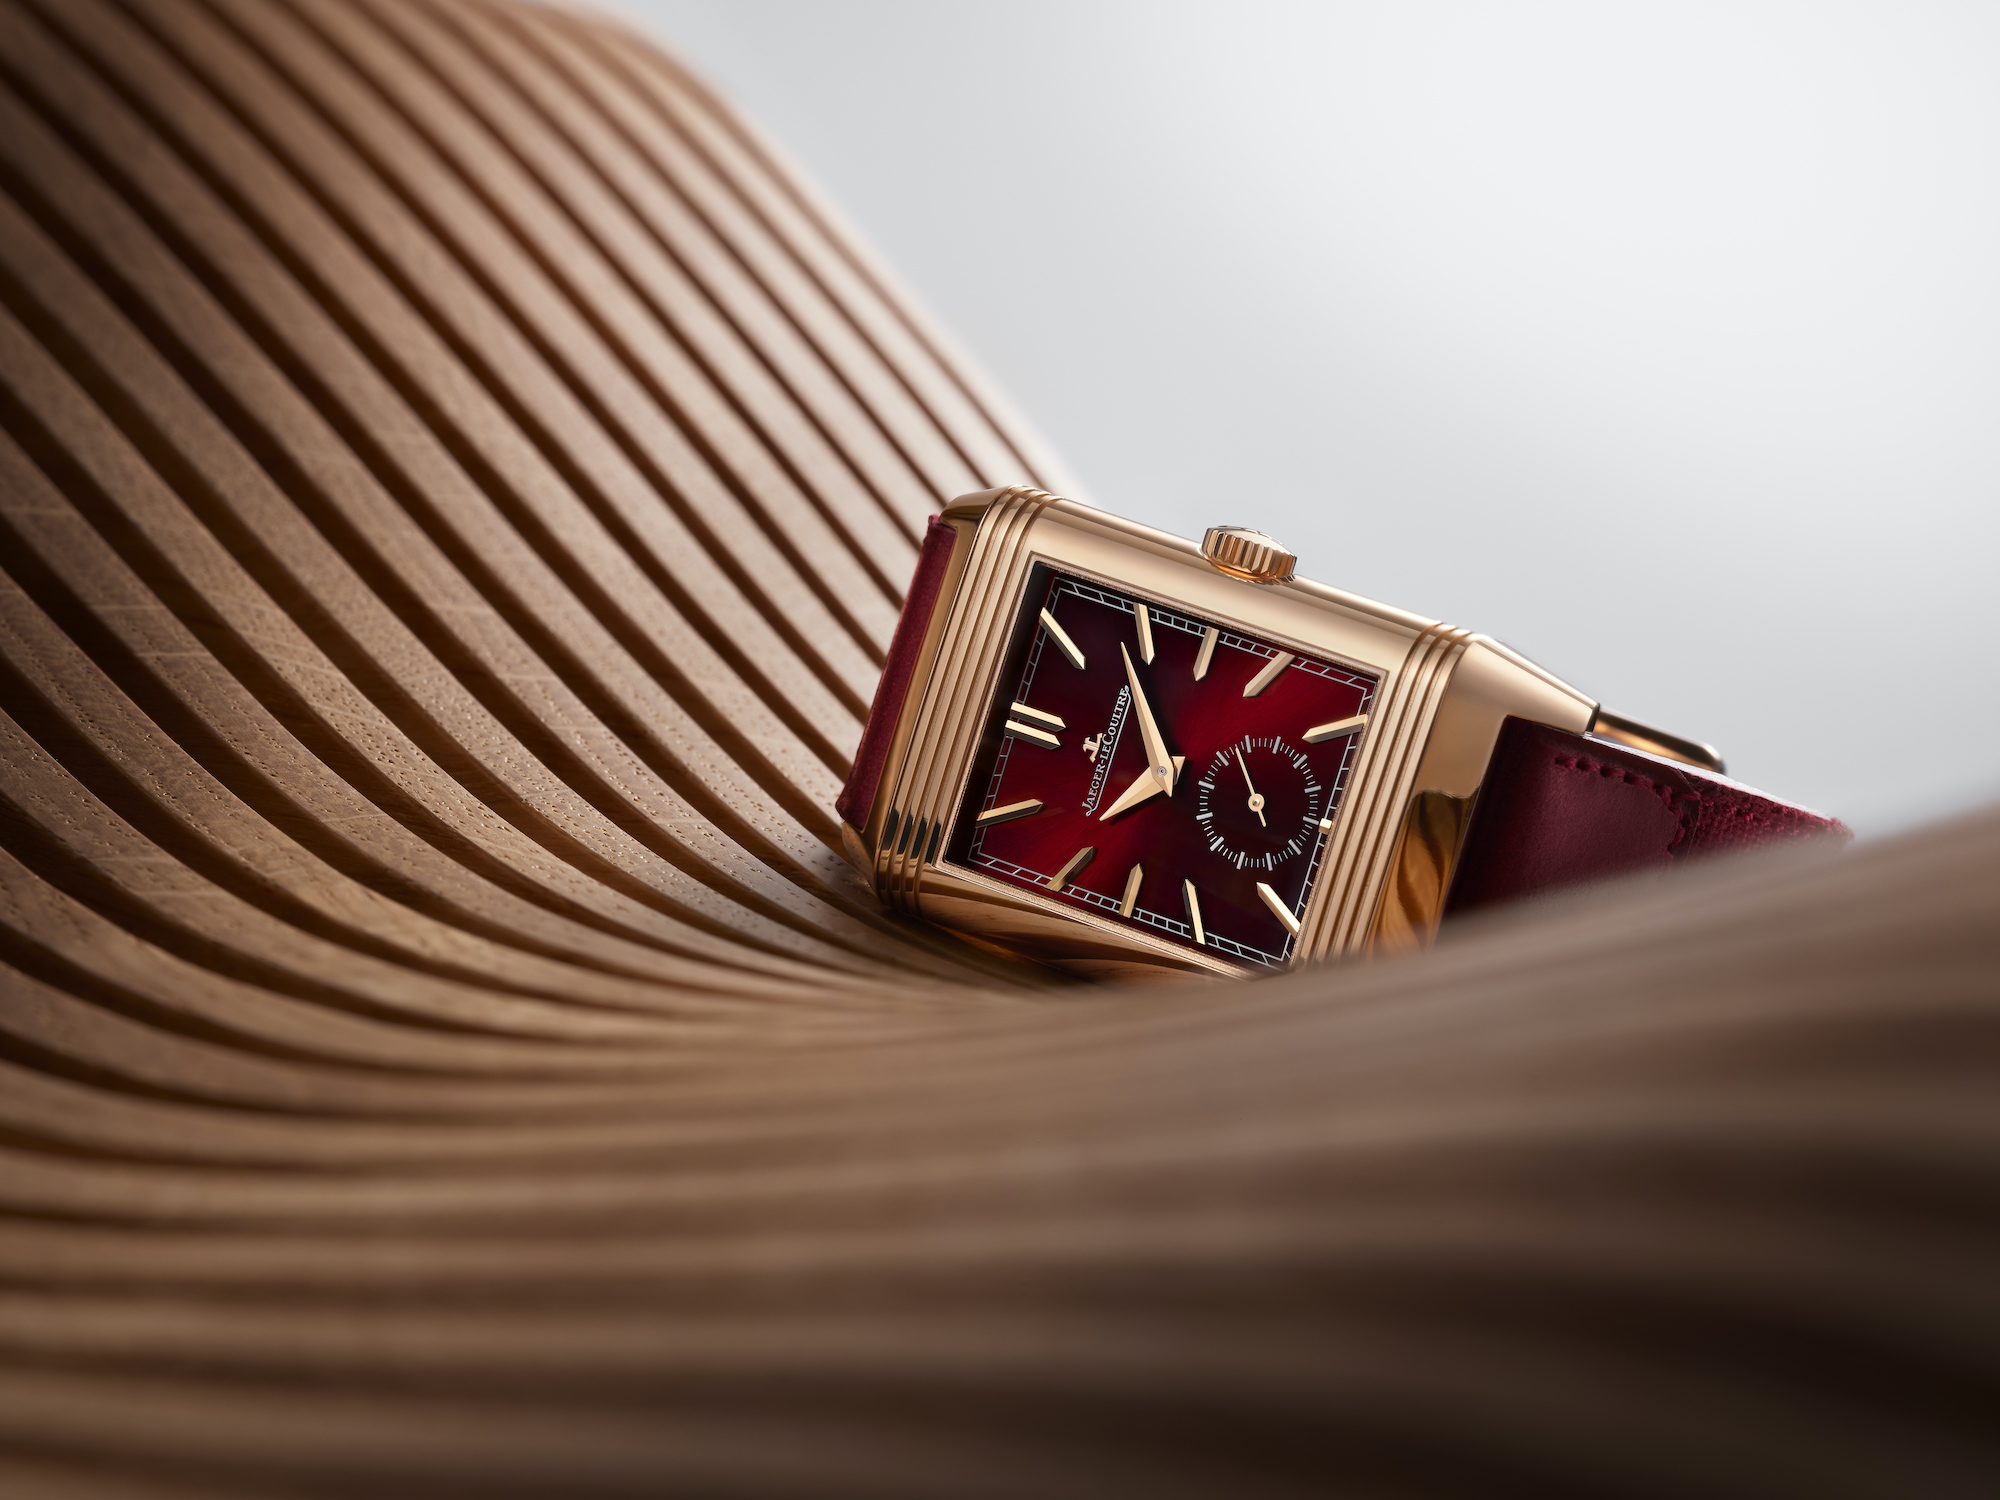 Jaeger-LeCoultre Reverso Tribute Duoface Fagliano lifestyle